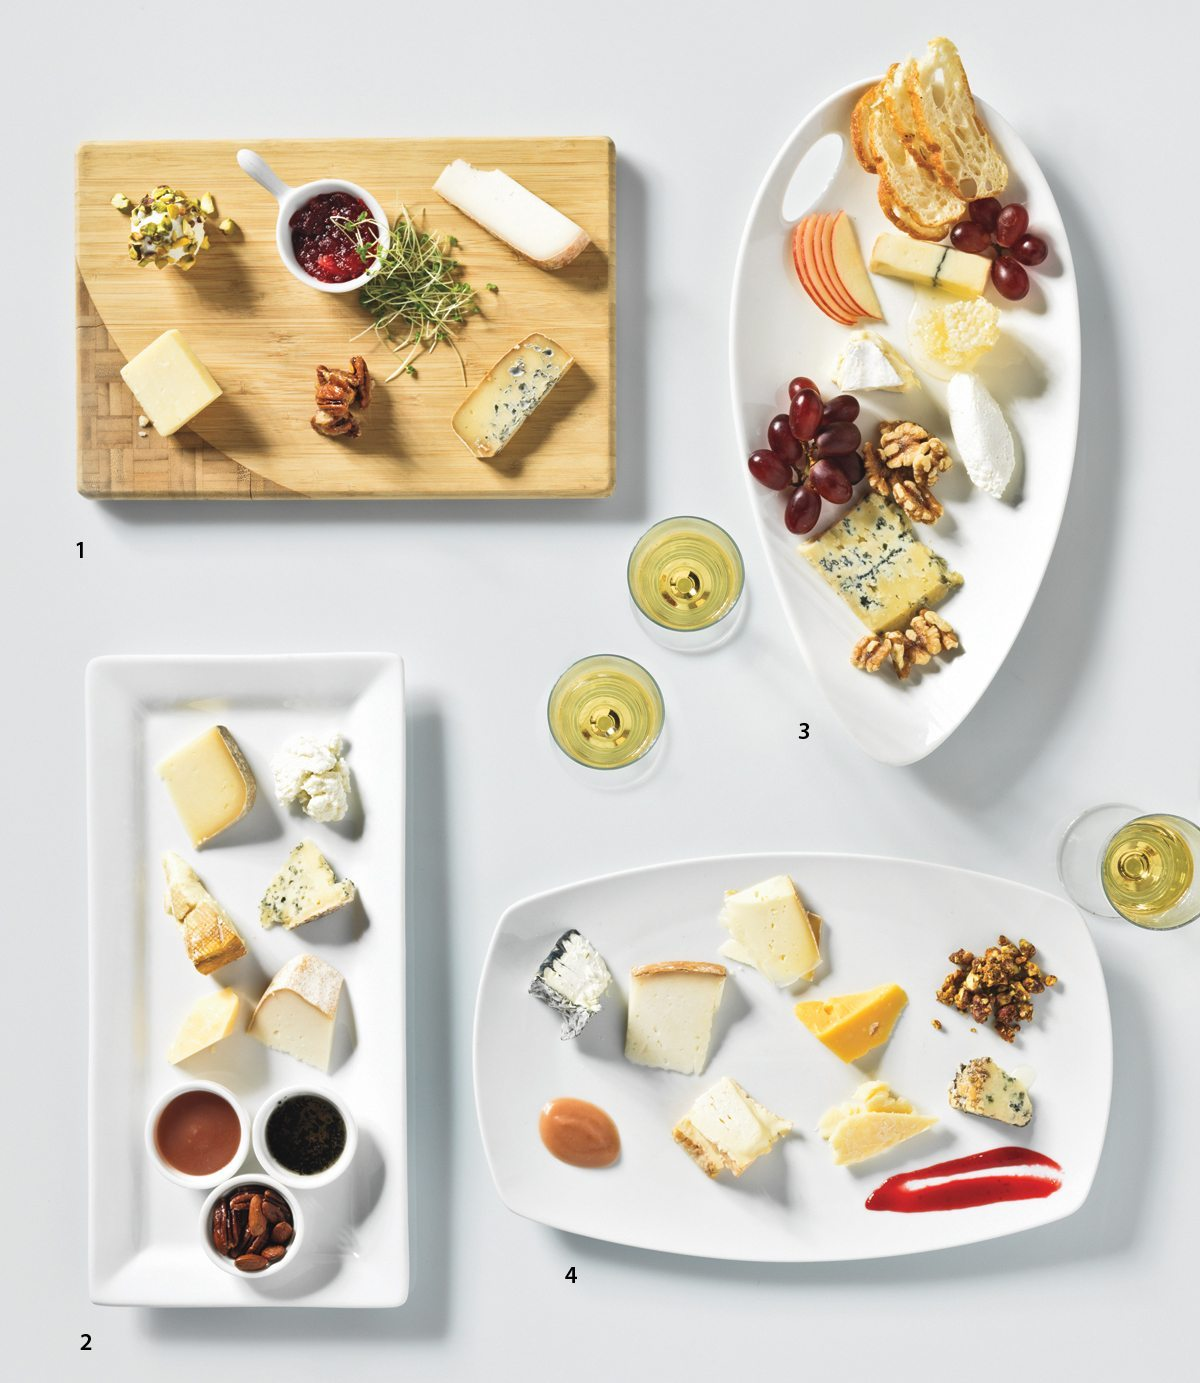 THE DISH: Say cheese! Who's creating the most mouth-watering cheese plate?